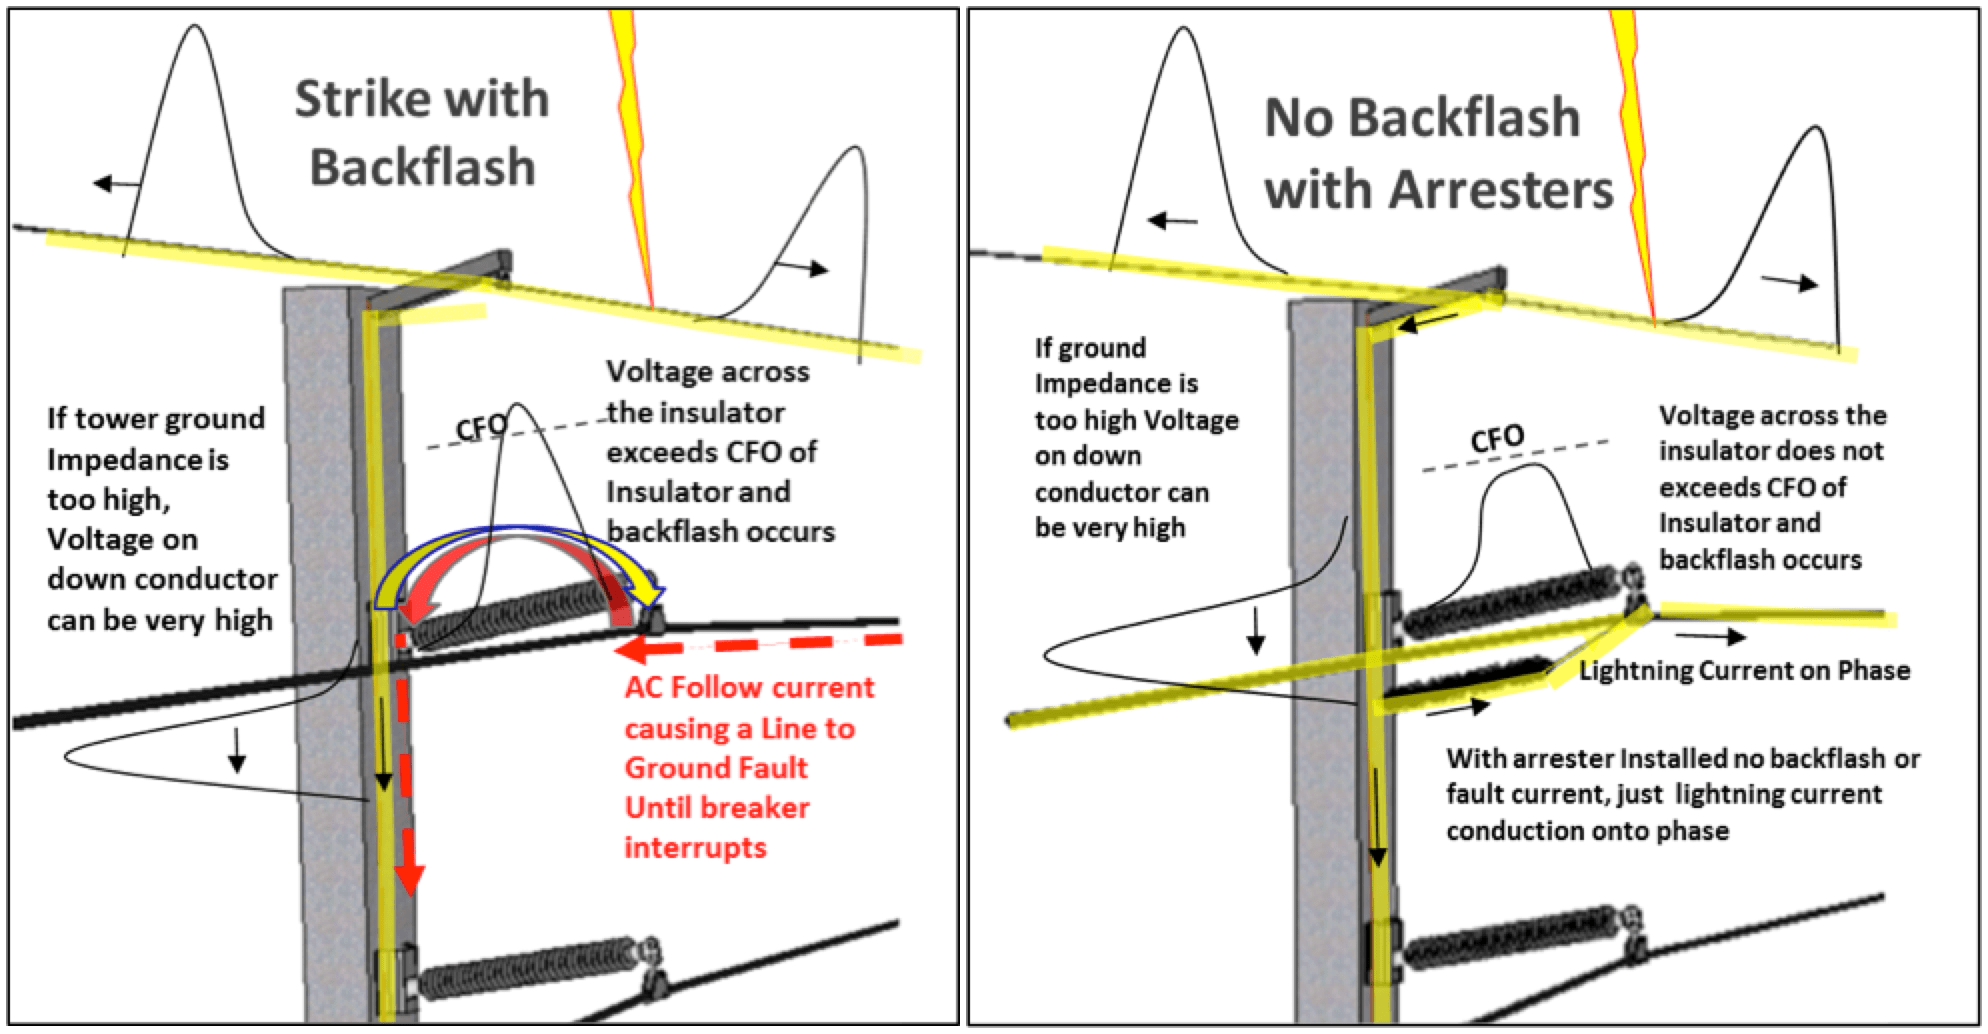 Fig. 4: Overview of back-flashover process.